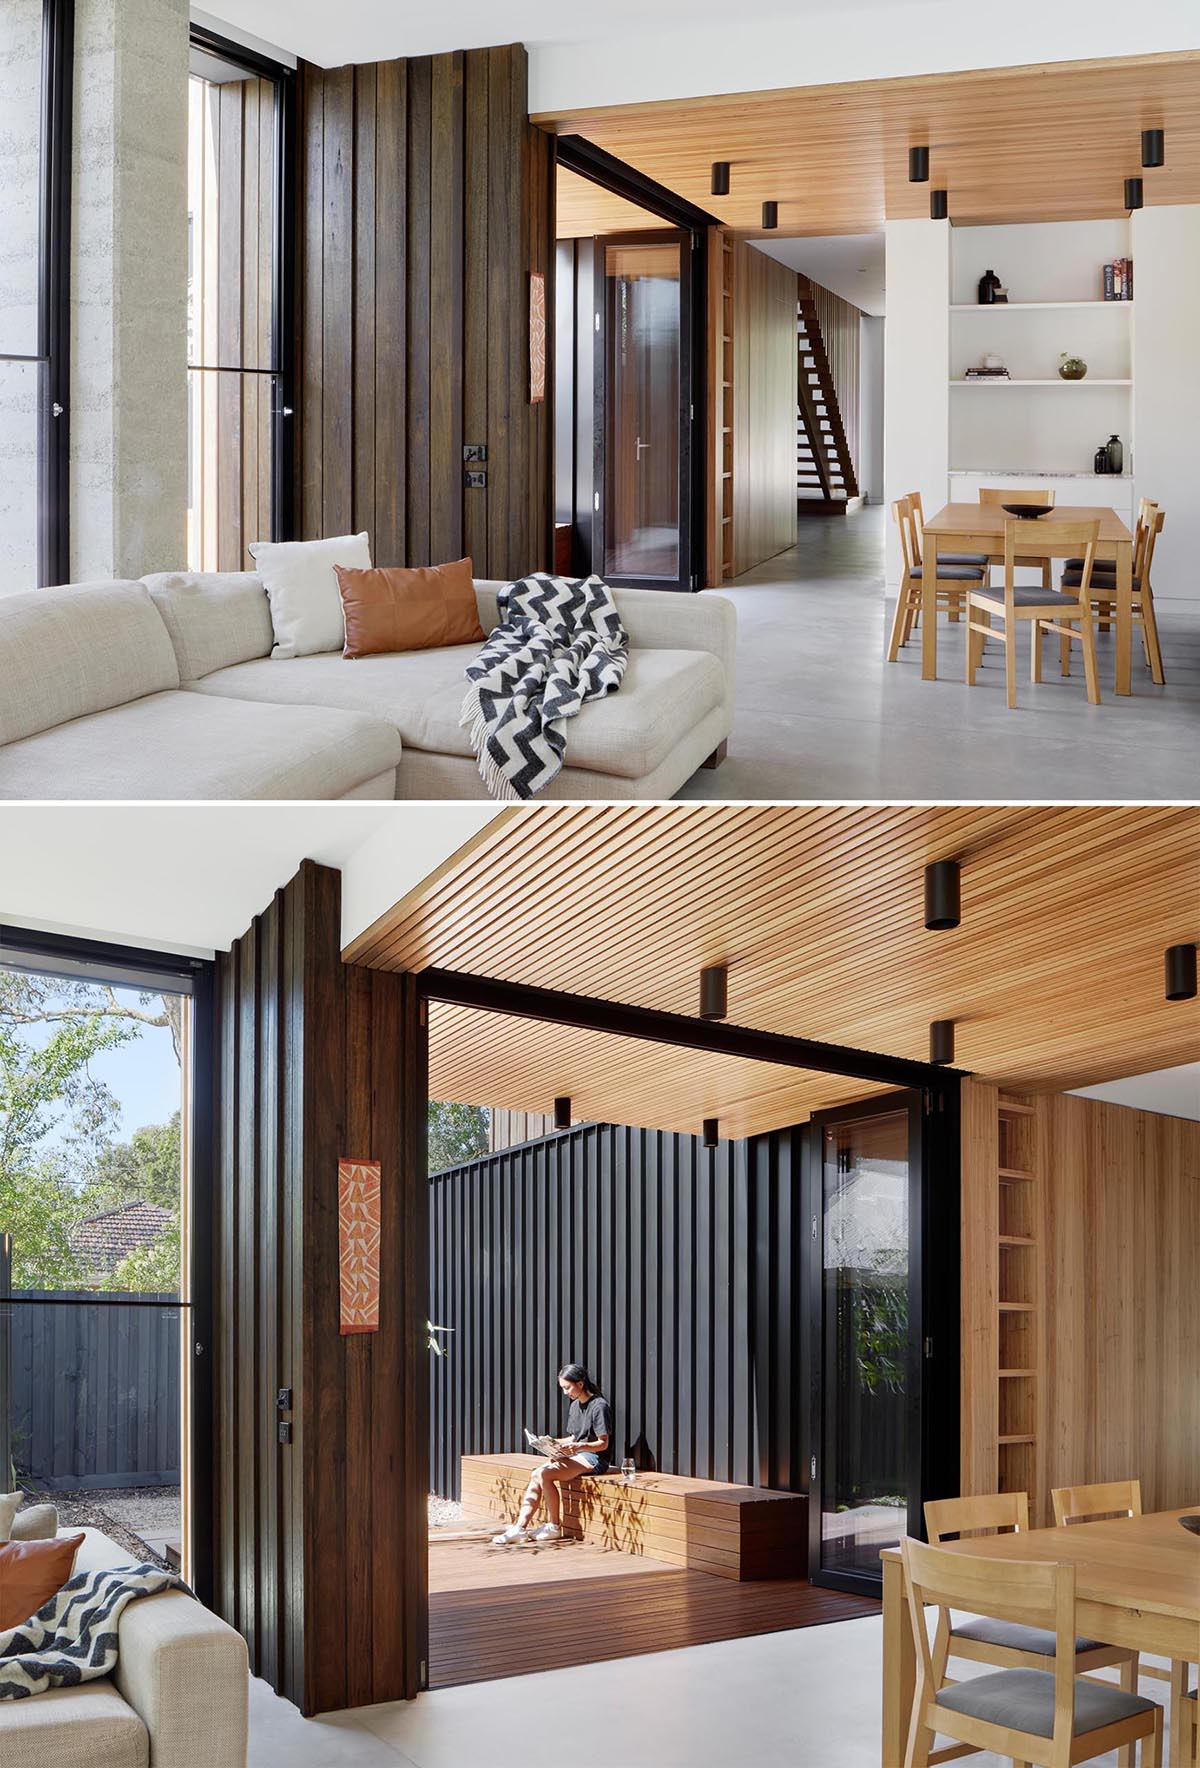 A timber batten ceiling designates the dining room, and extends out to a deck with a bench, with bi-fold doors connecting the two spaces.